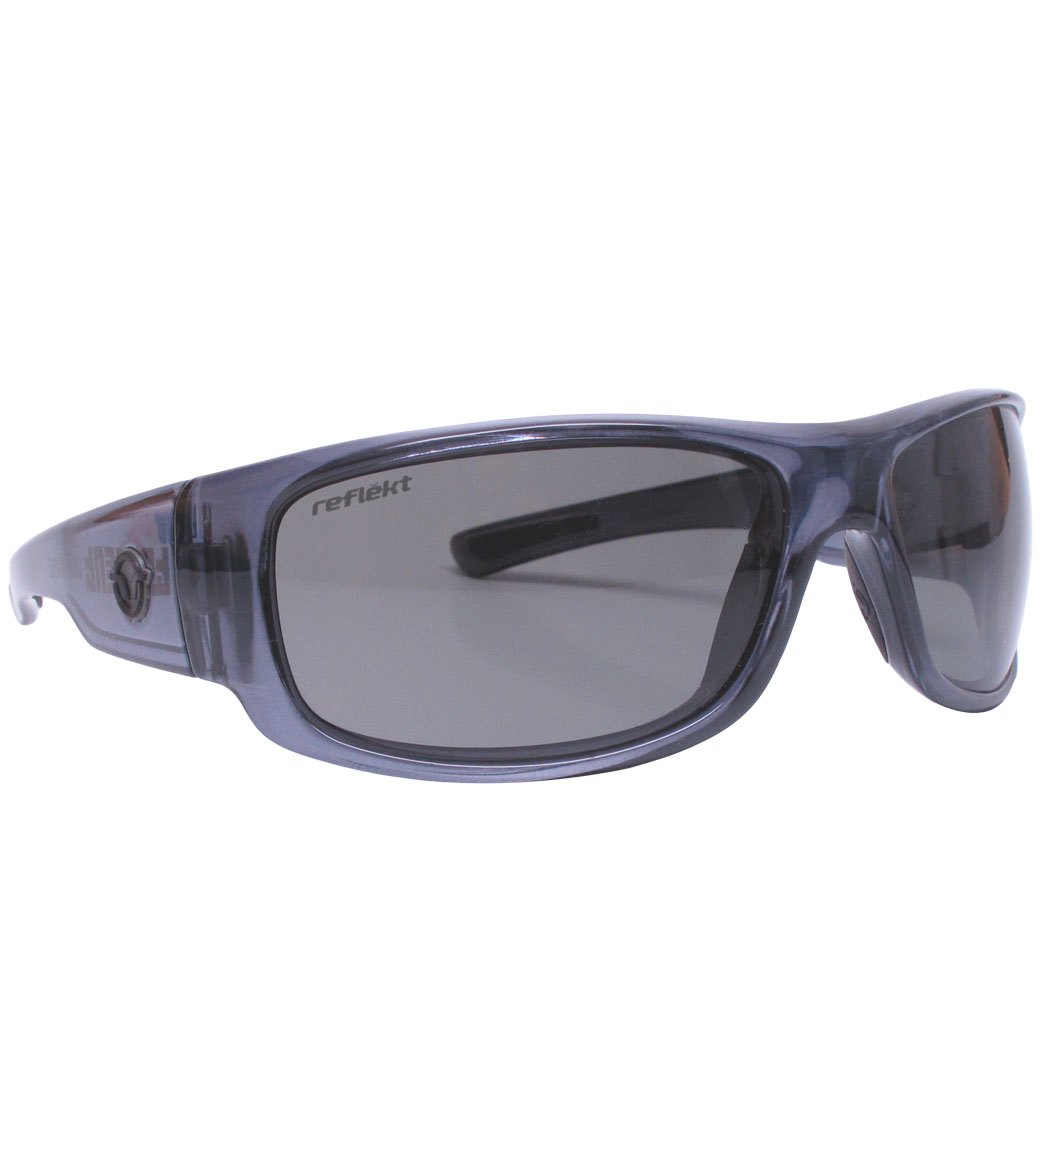 b5c8aef9d6c Unsinkable Polarized Torrent Unsinkable Polarized Floating Sunglasses at  SwimOutlet.com - Free Shipping